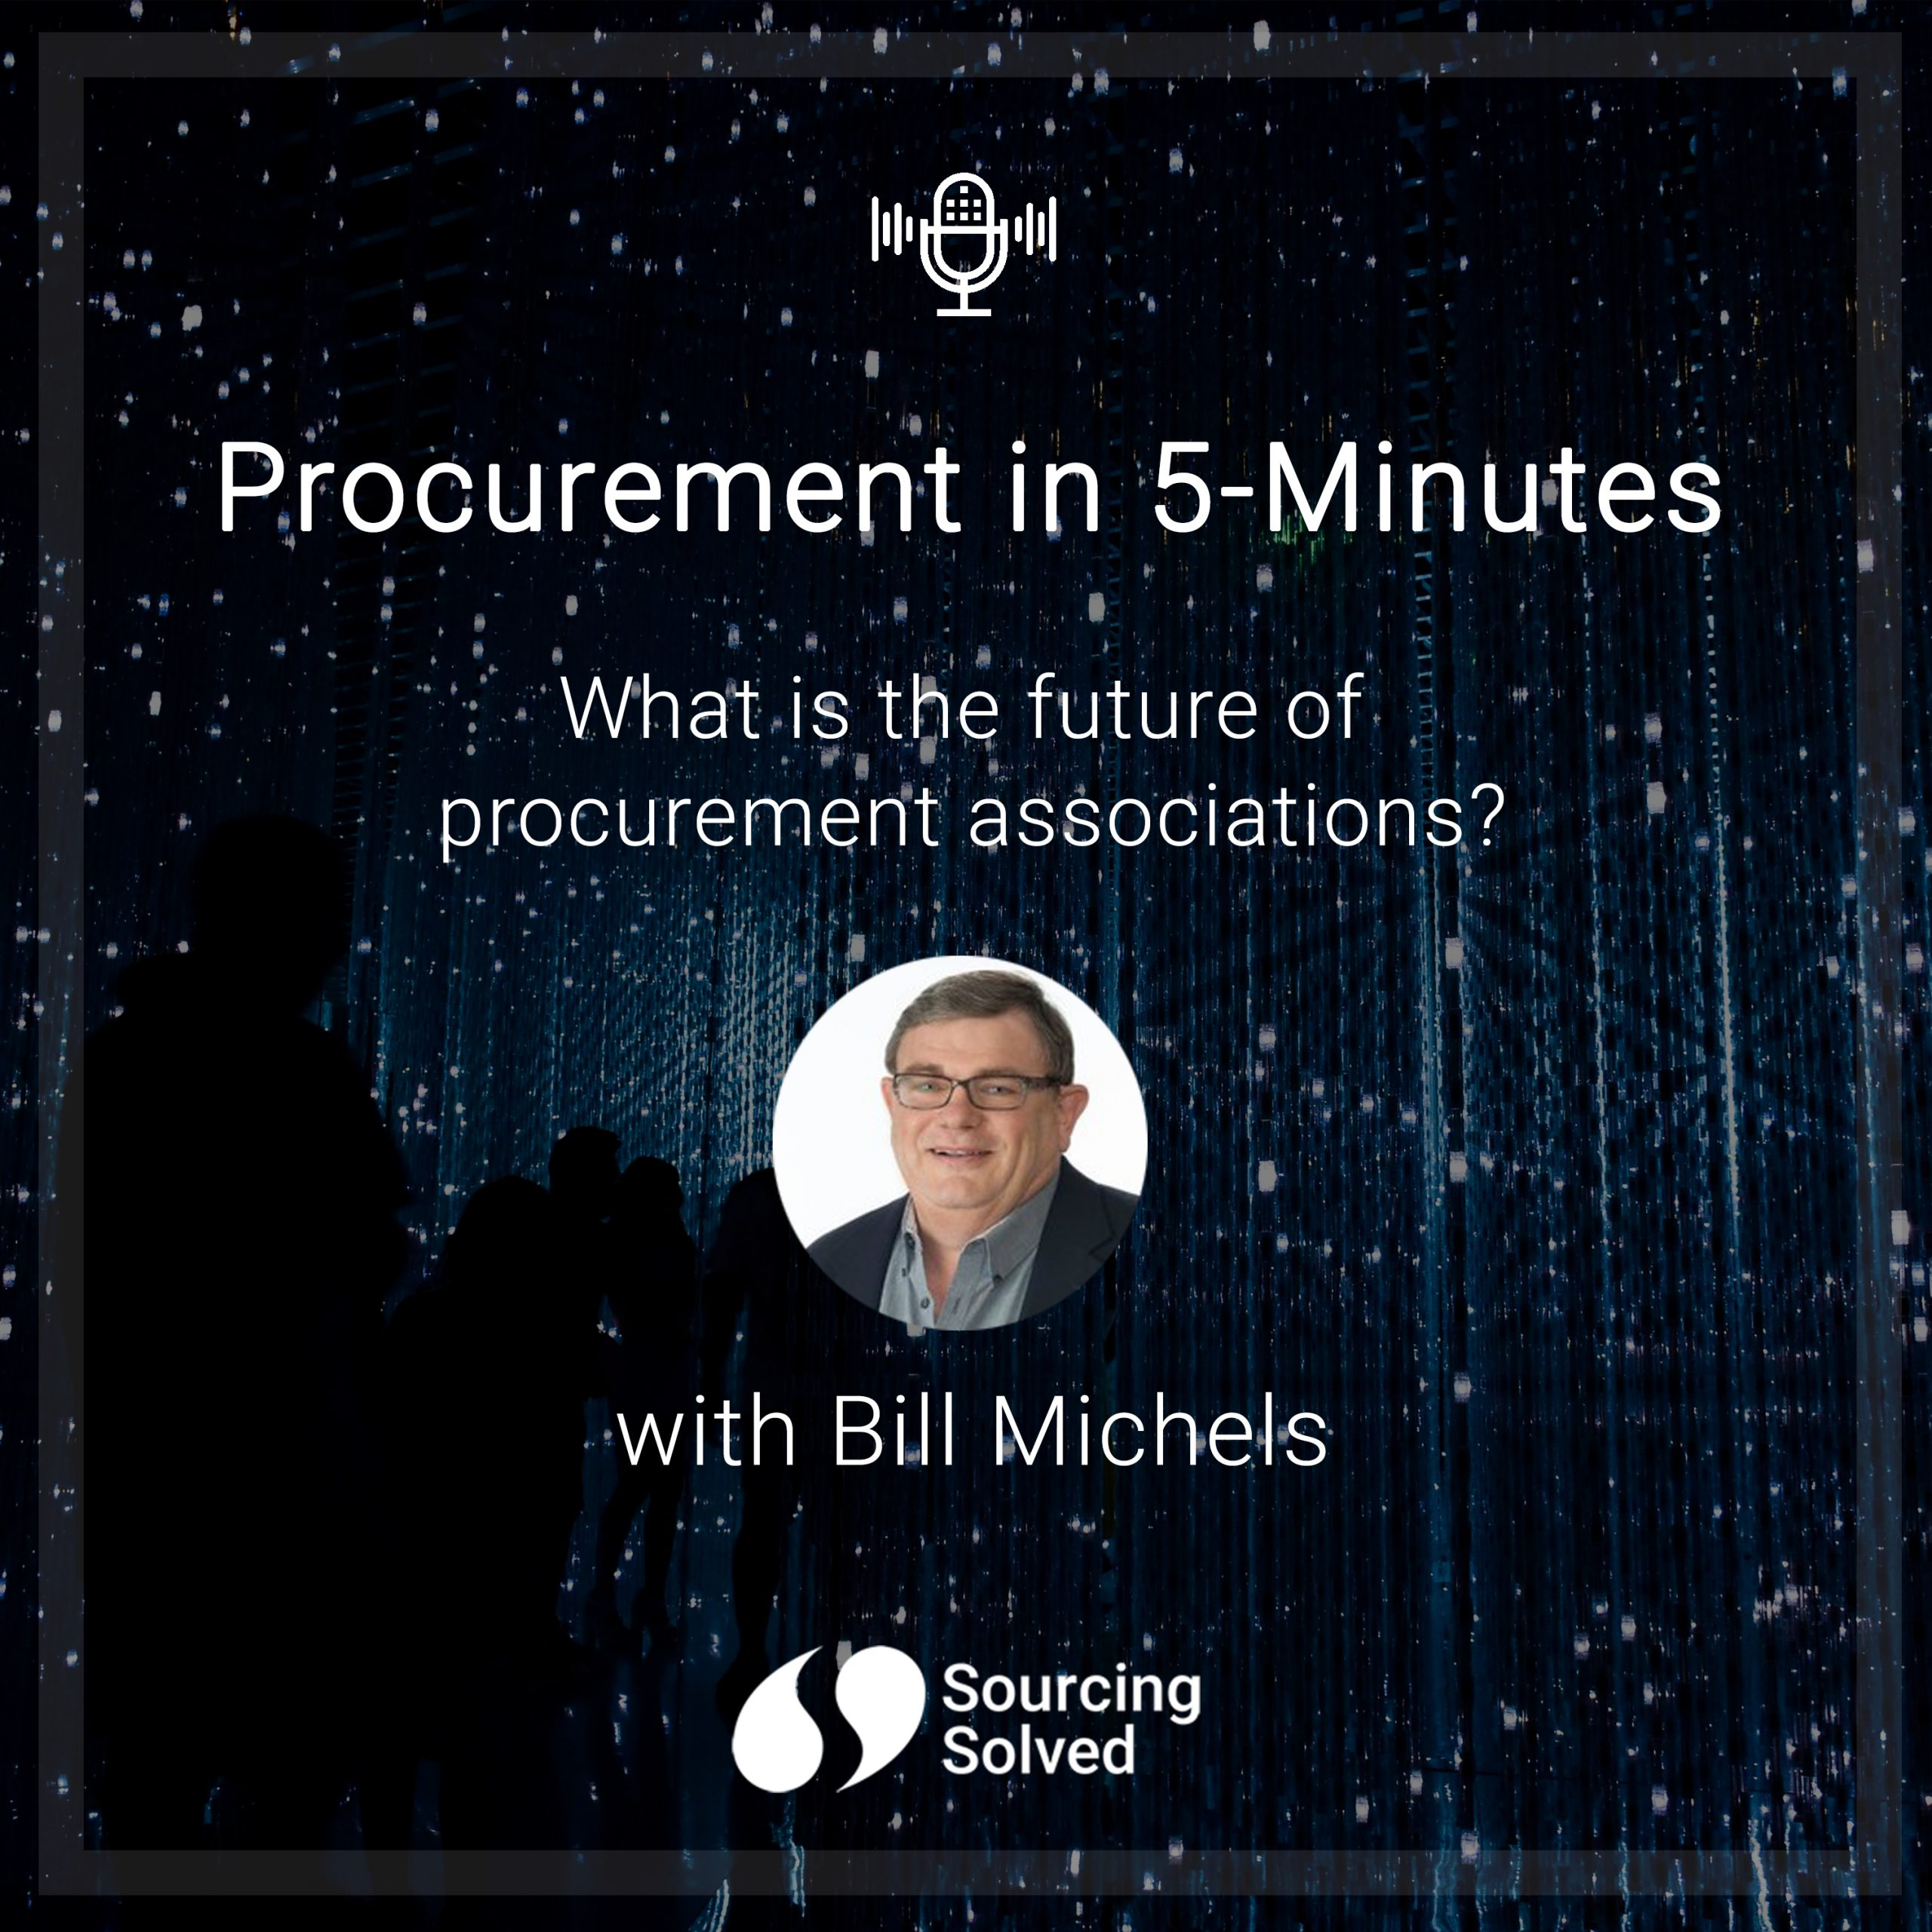 Procurement in 5-Minutes: What is the future of Procurement Associations?